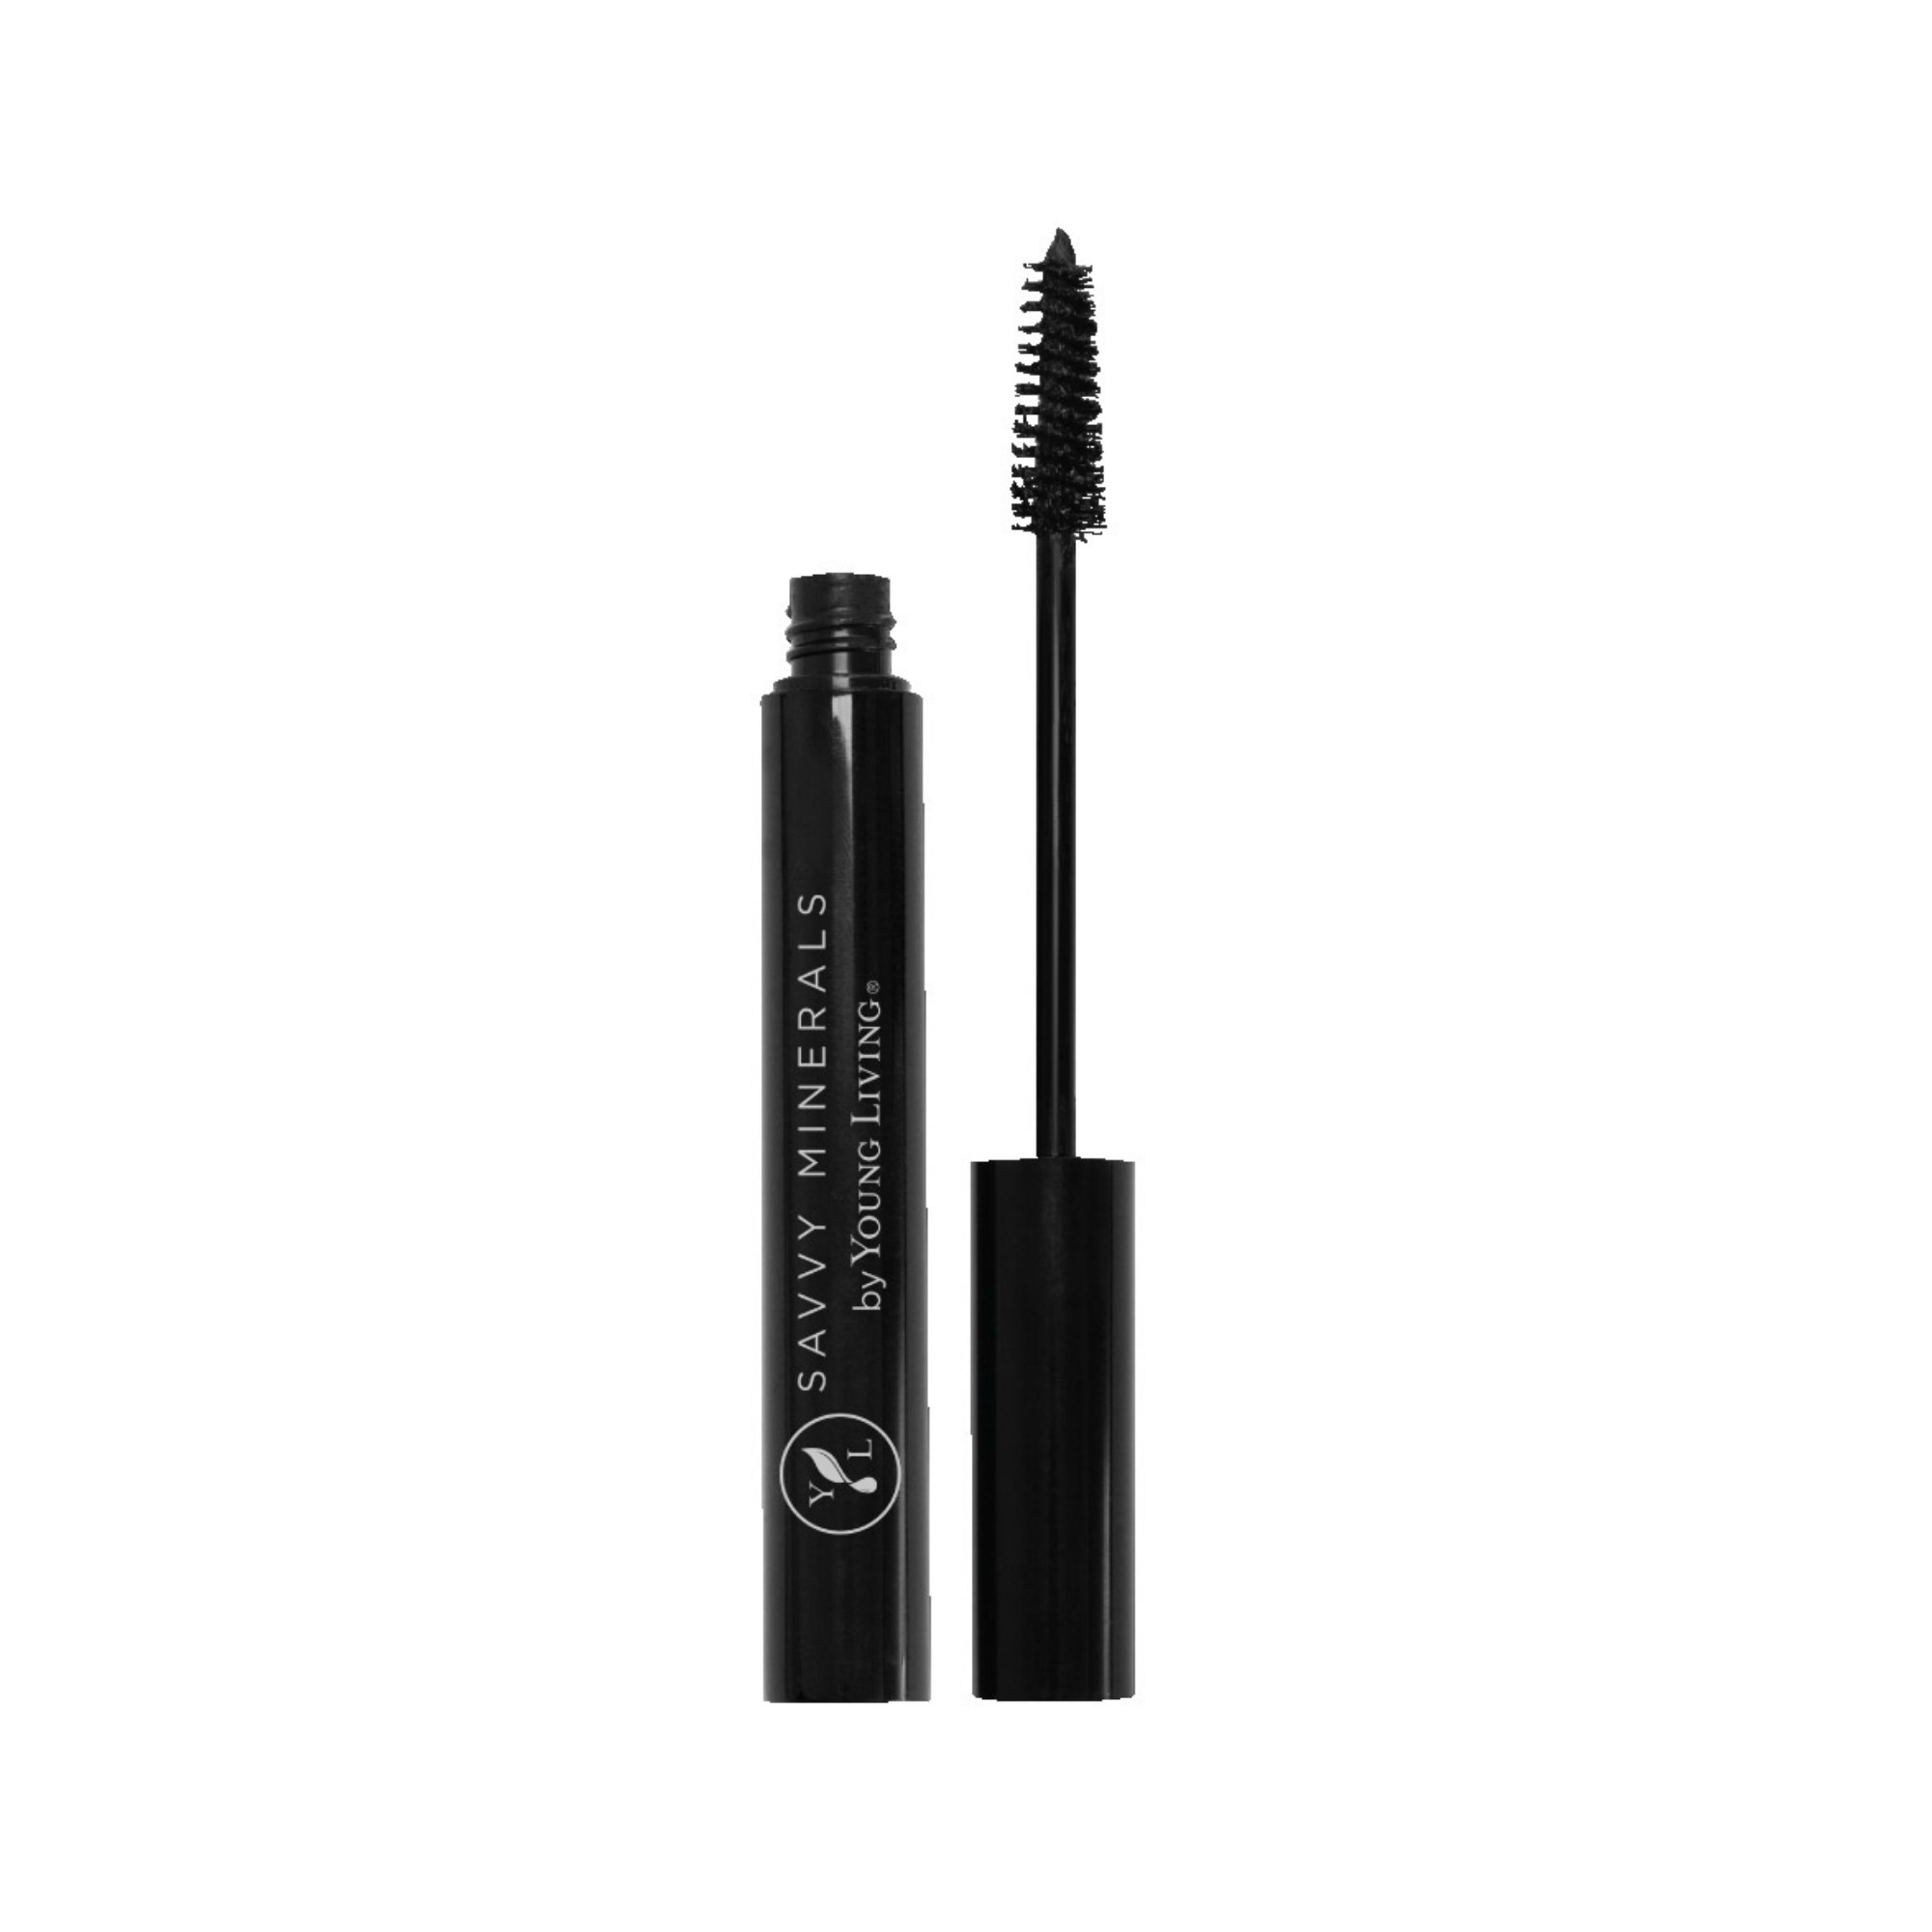 MASCARA    No harmful ingredients, formulated for sensitive eyes, and not tested on animals, Savvy Minerals Mascara lets you flutter your lashes with confidence. This mascara complements a subtle daytime look or a fun evening style with natural definition. It's also infused with Lavender essential oil to support healthy hair growth.   Click here   to learn more about this product.